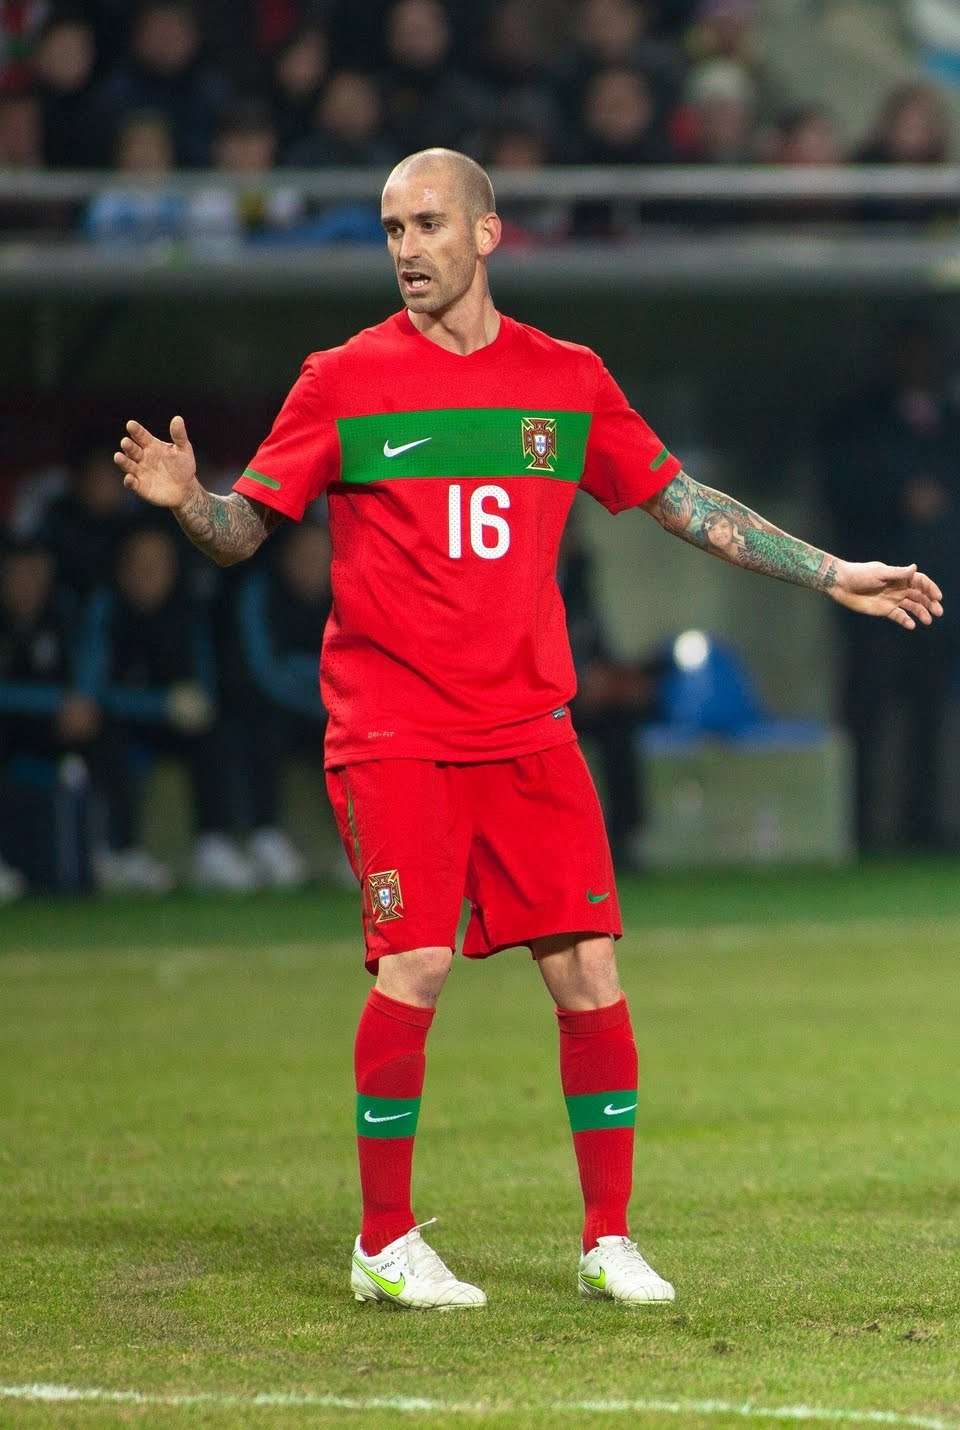 Raul Meireles Net Worth